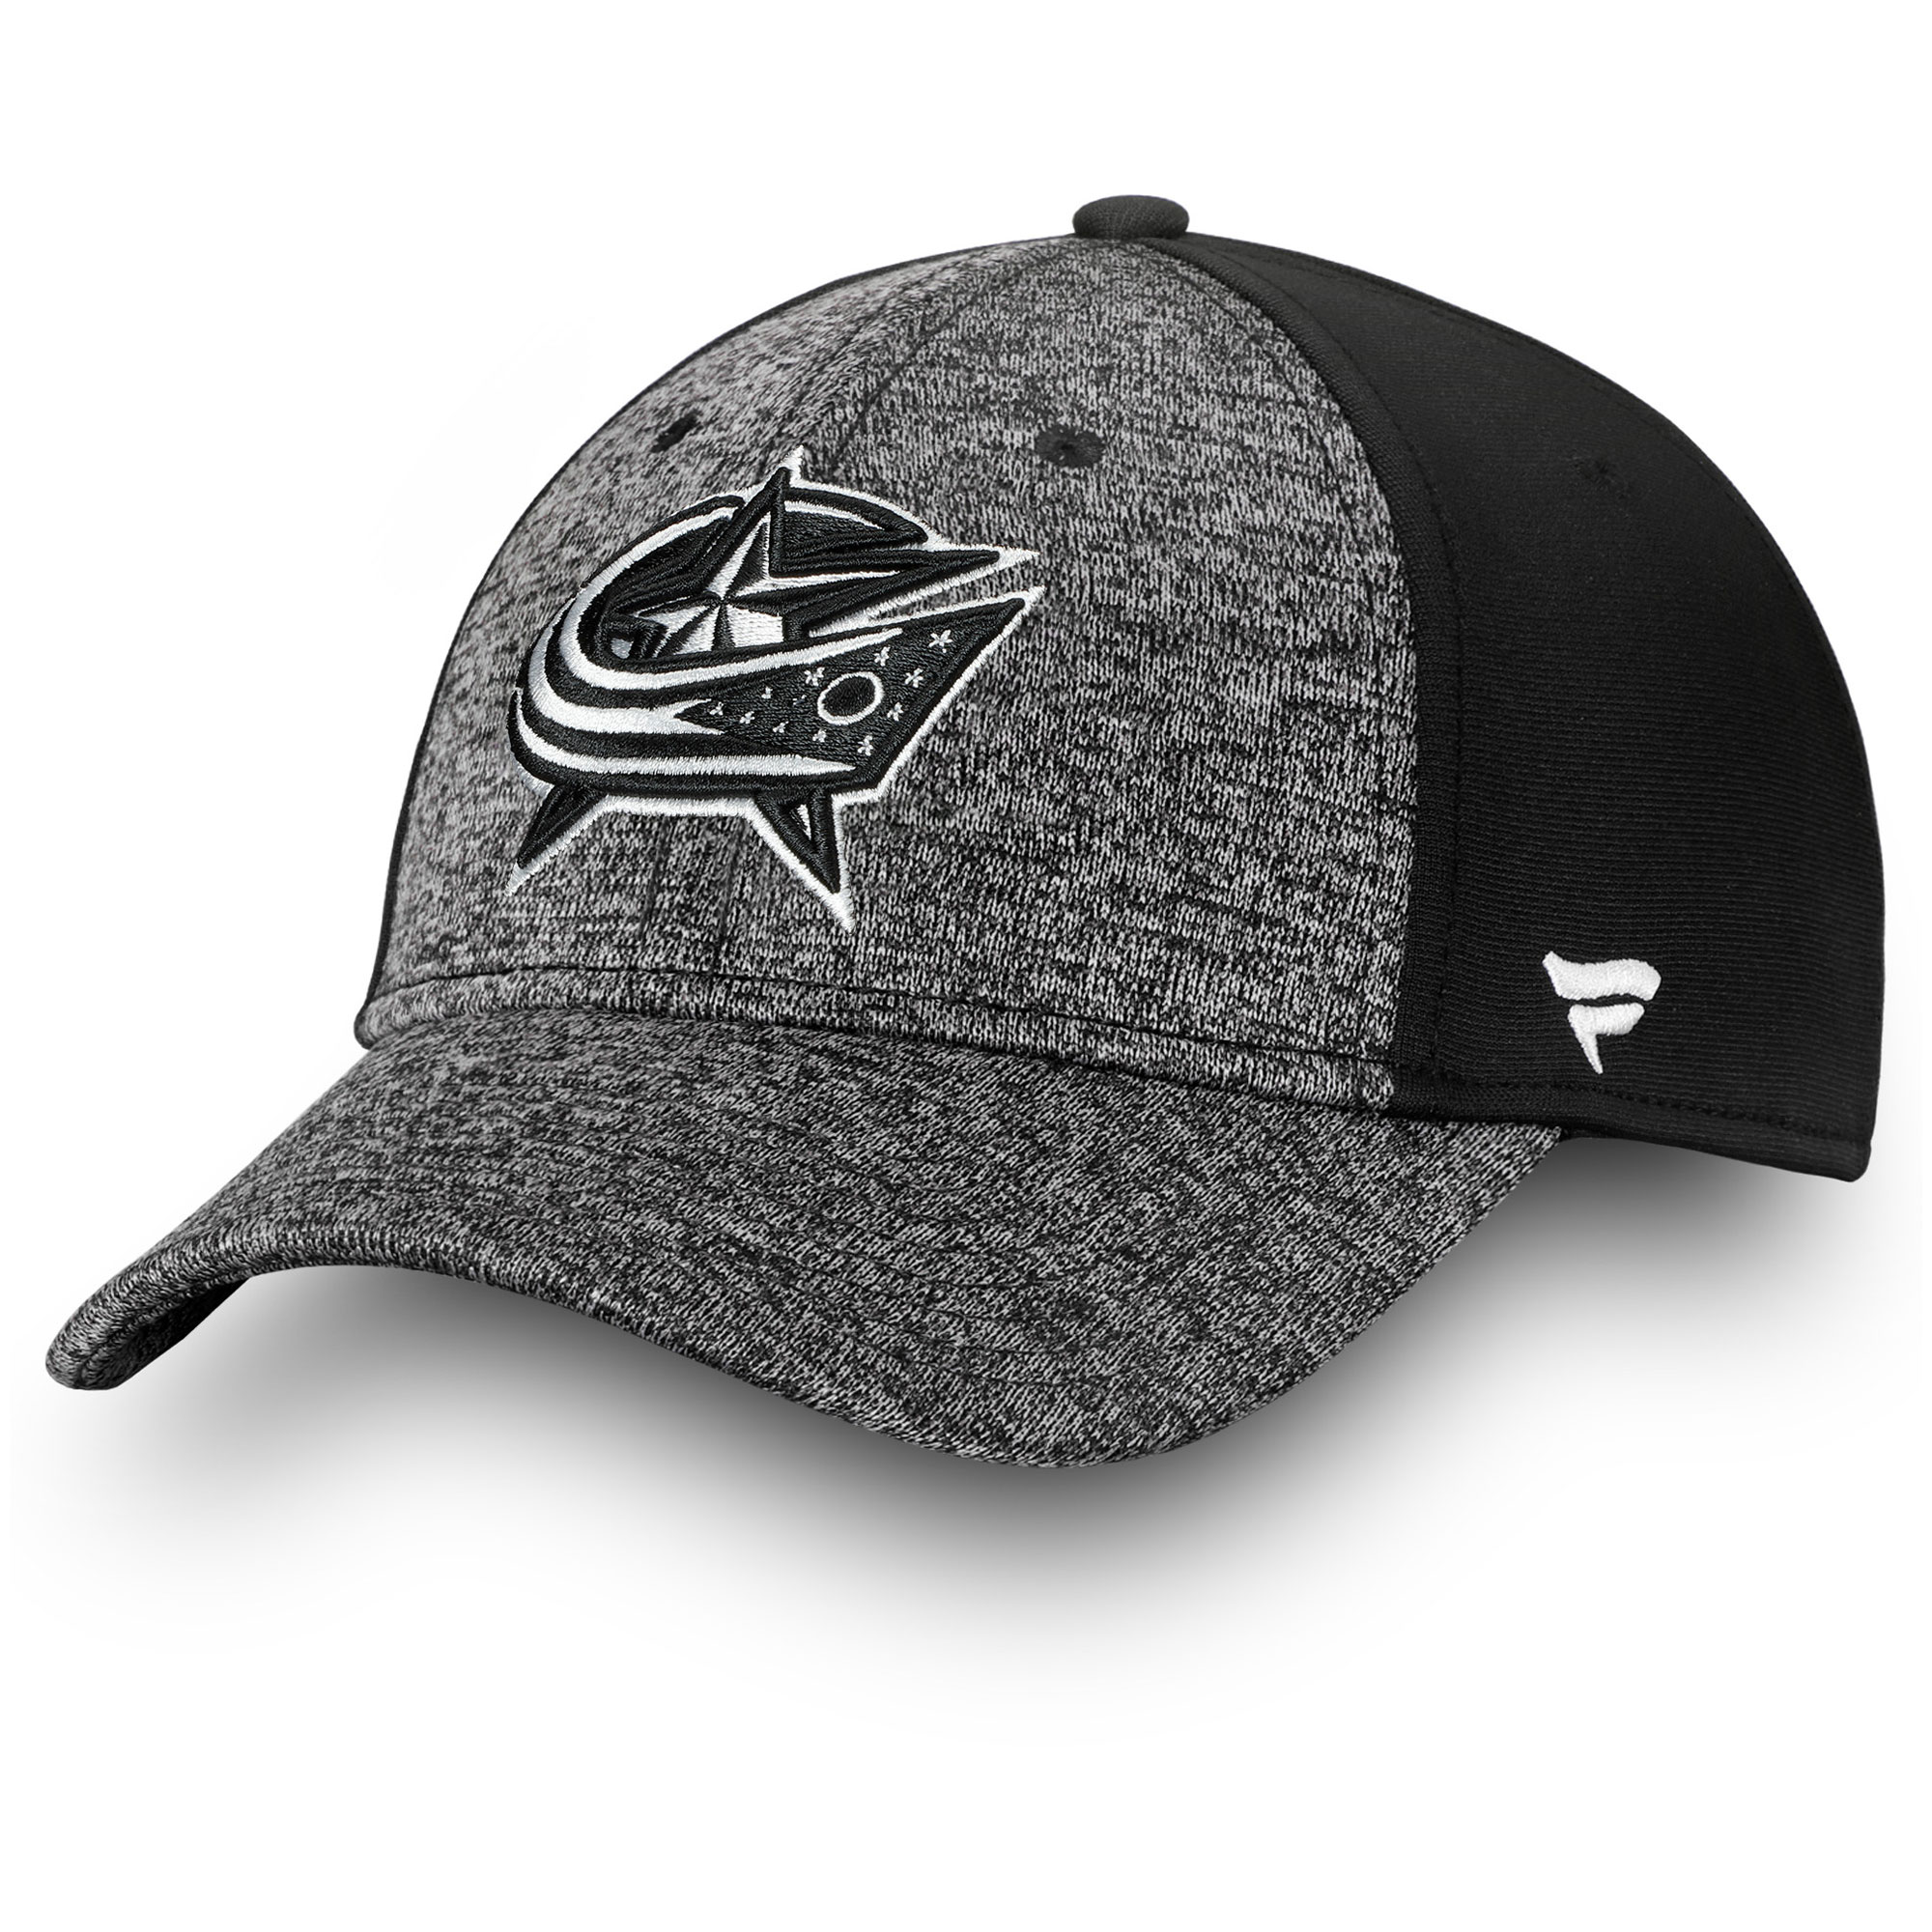 Columbus Blue Jackets Fanatics Branded Black and White Mesh Speed Flex Hat - Gray/Black